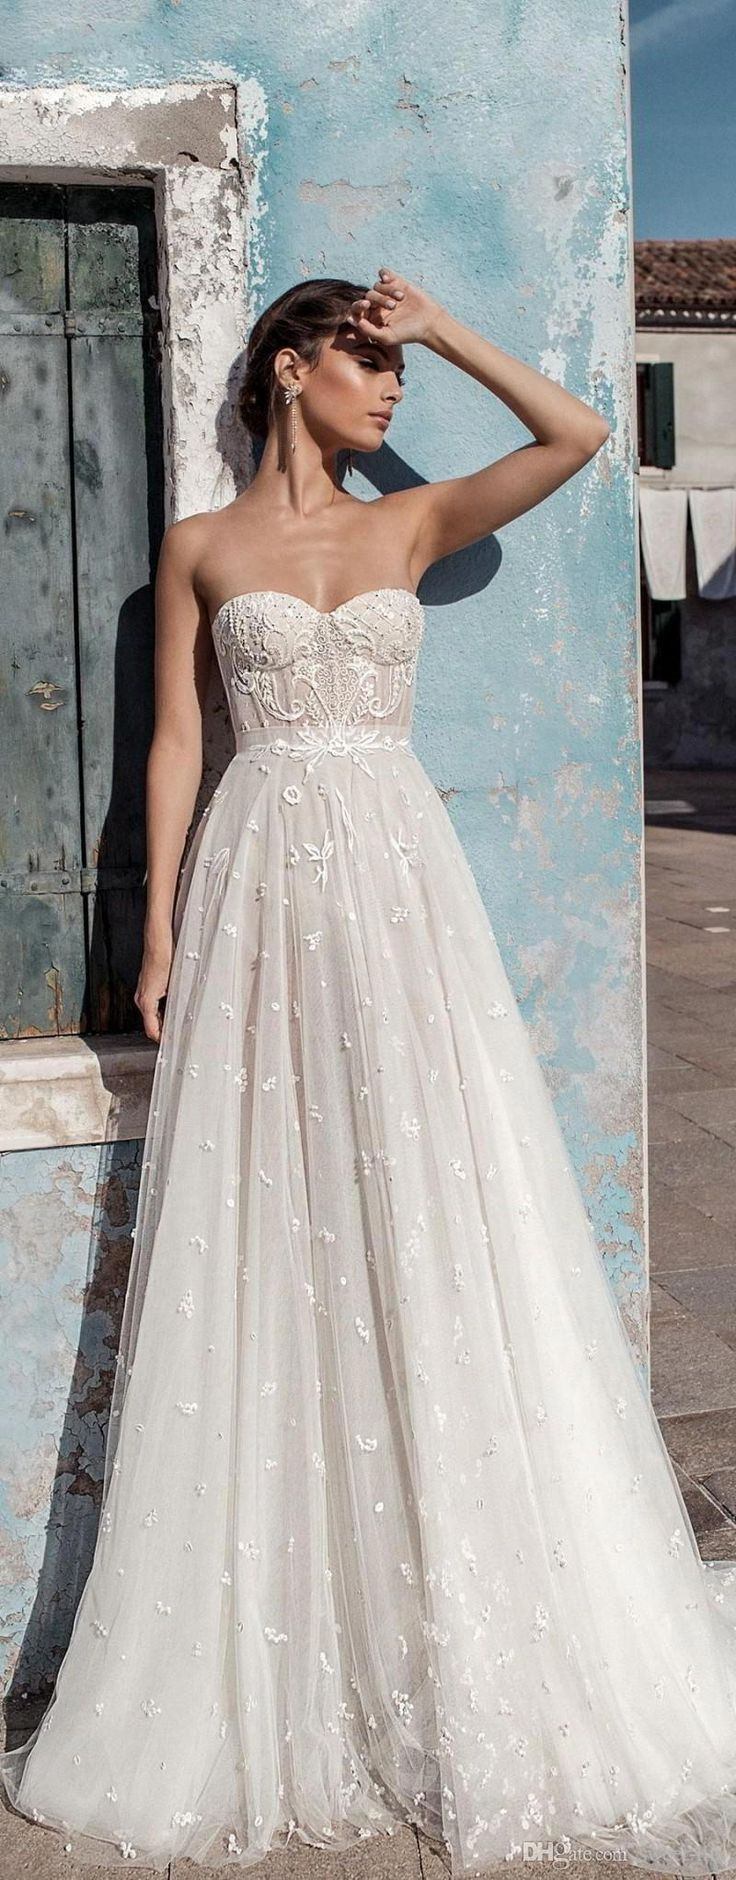 Discount 2019 New Sexy Sheath Wedding Dresses With High Split Front Capped Sleeves Lace Chiffon Boho Beach Sheer Bodice Bridal Gowns Custom Made Wedding Lace Dresses A Line Lace Wedding Dress From Sweet Life, $125.23| DHgate.Com